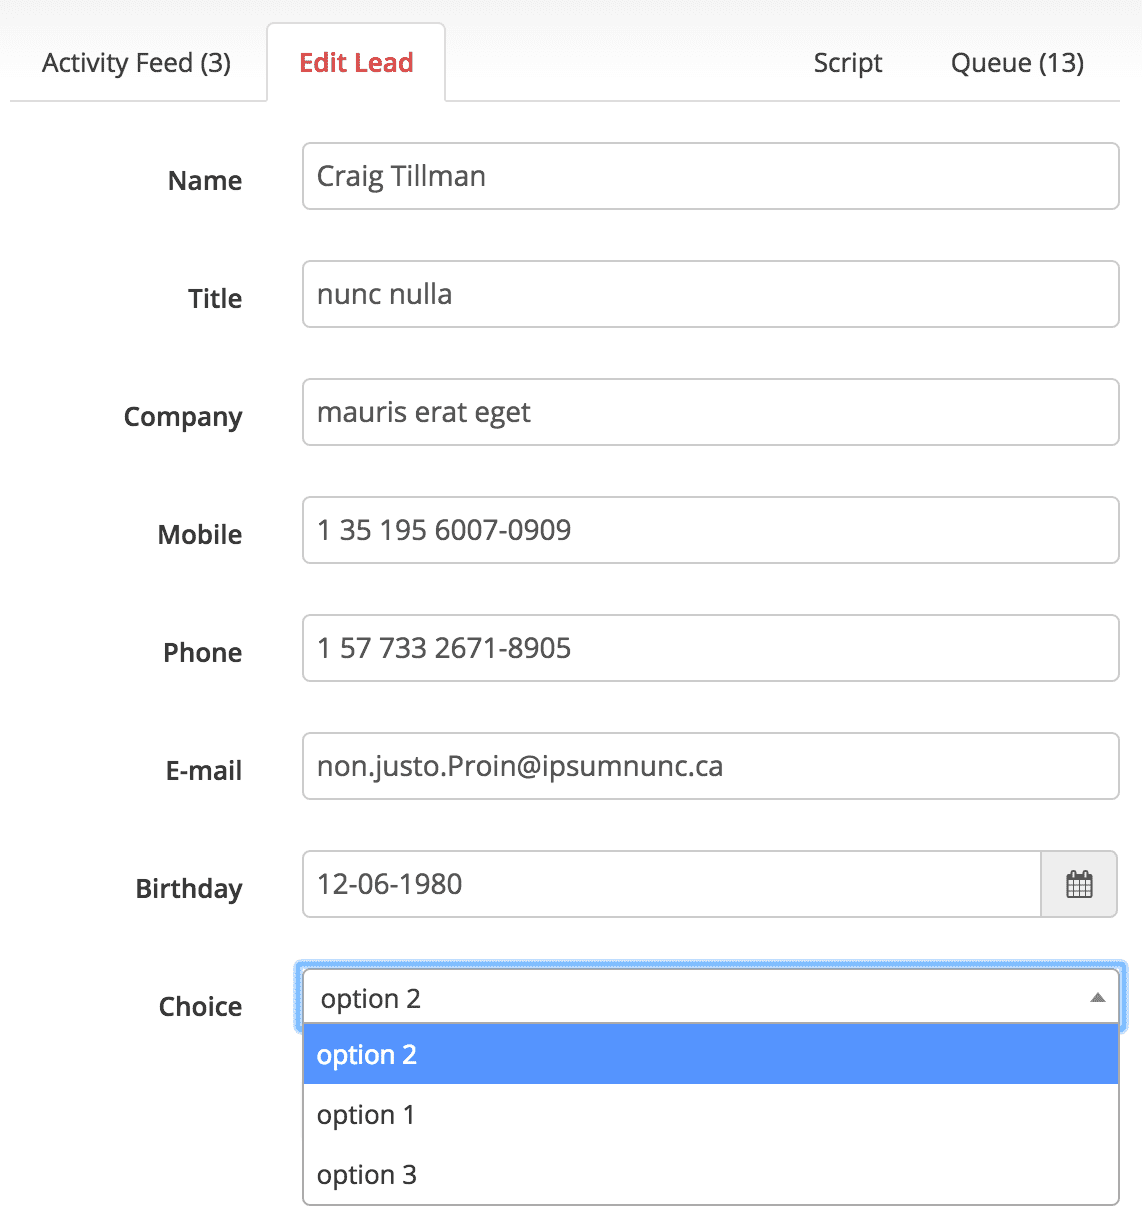 New field types: Date select and options select when editing a Lead